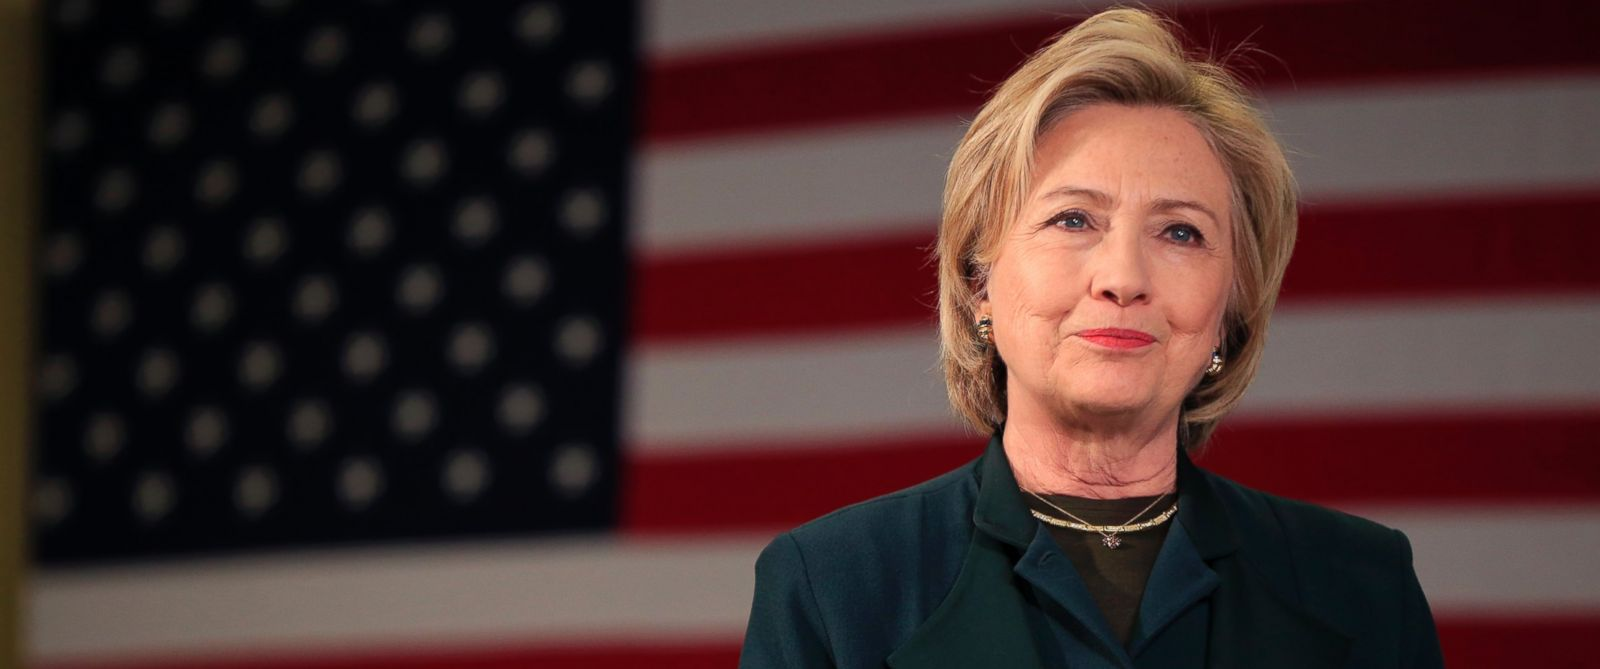 Your Handy Election Companion: The Differing Policies of Trump and Clinton